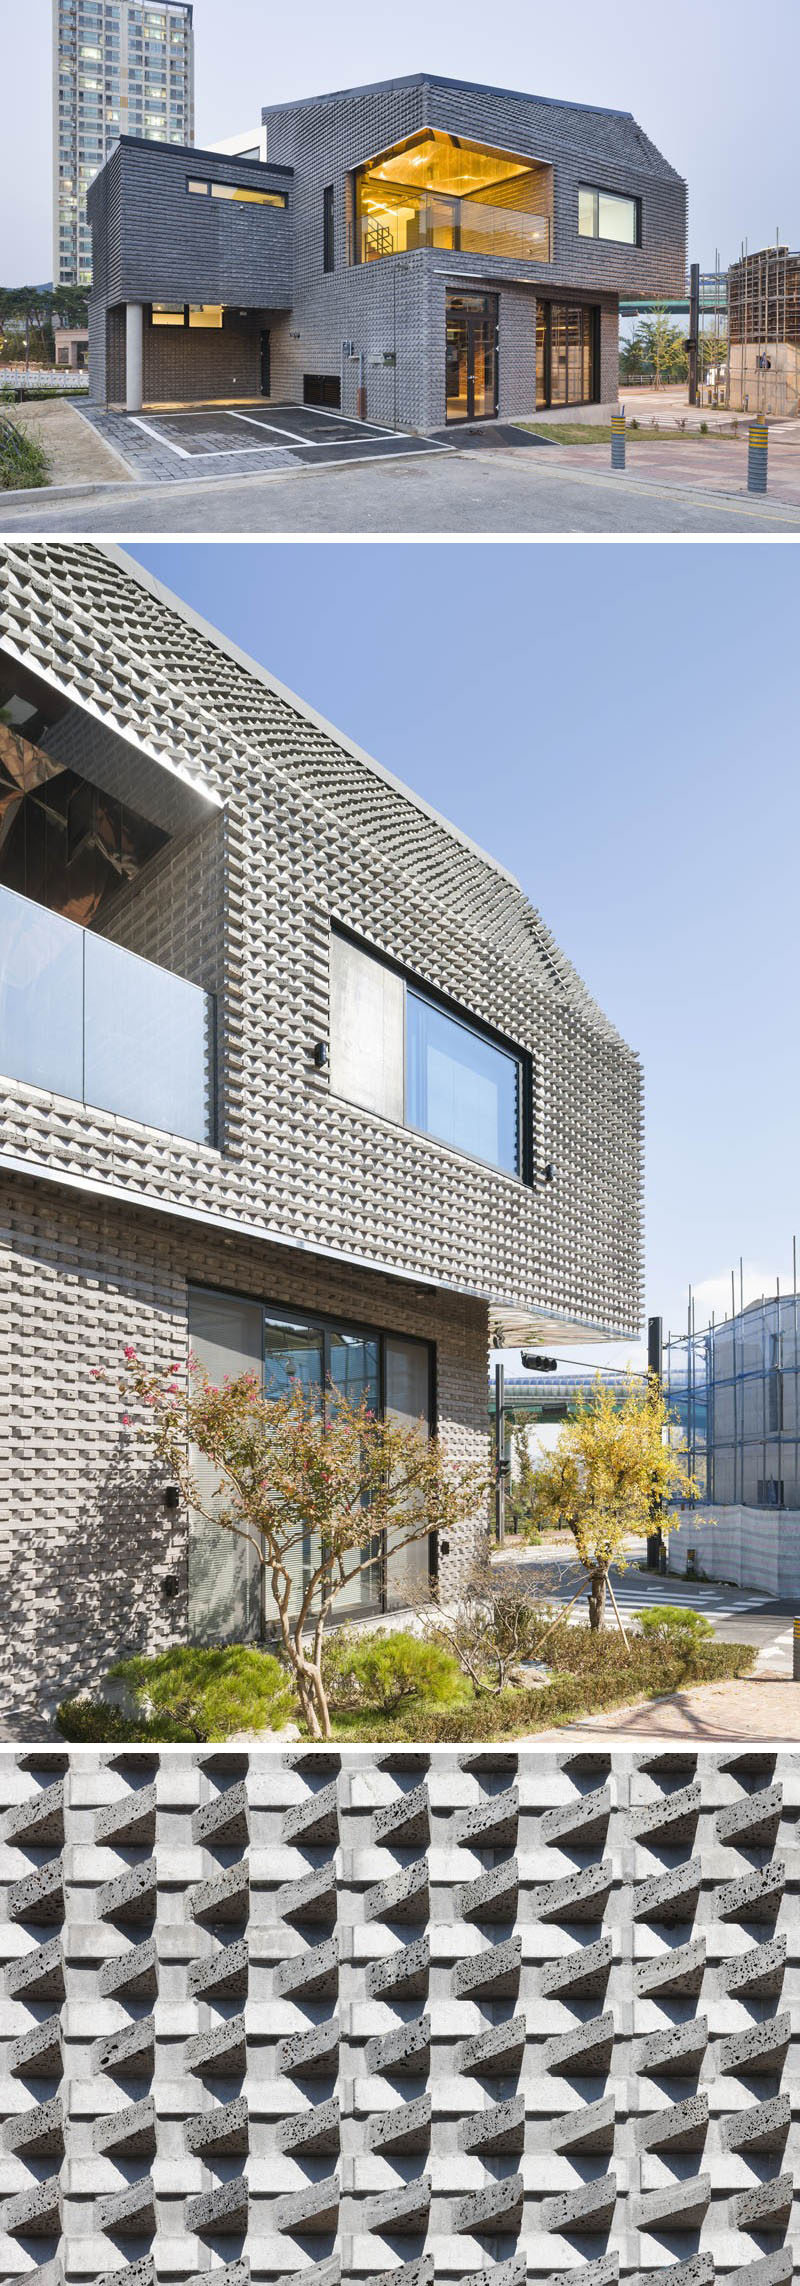 The bricks on the exterior of this house have been arranged on angles to create a textured look and a unique finish on the home.